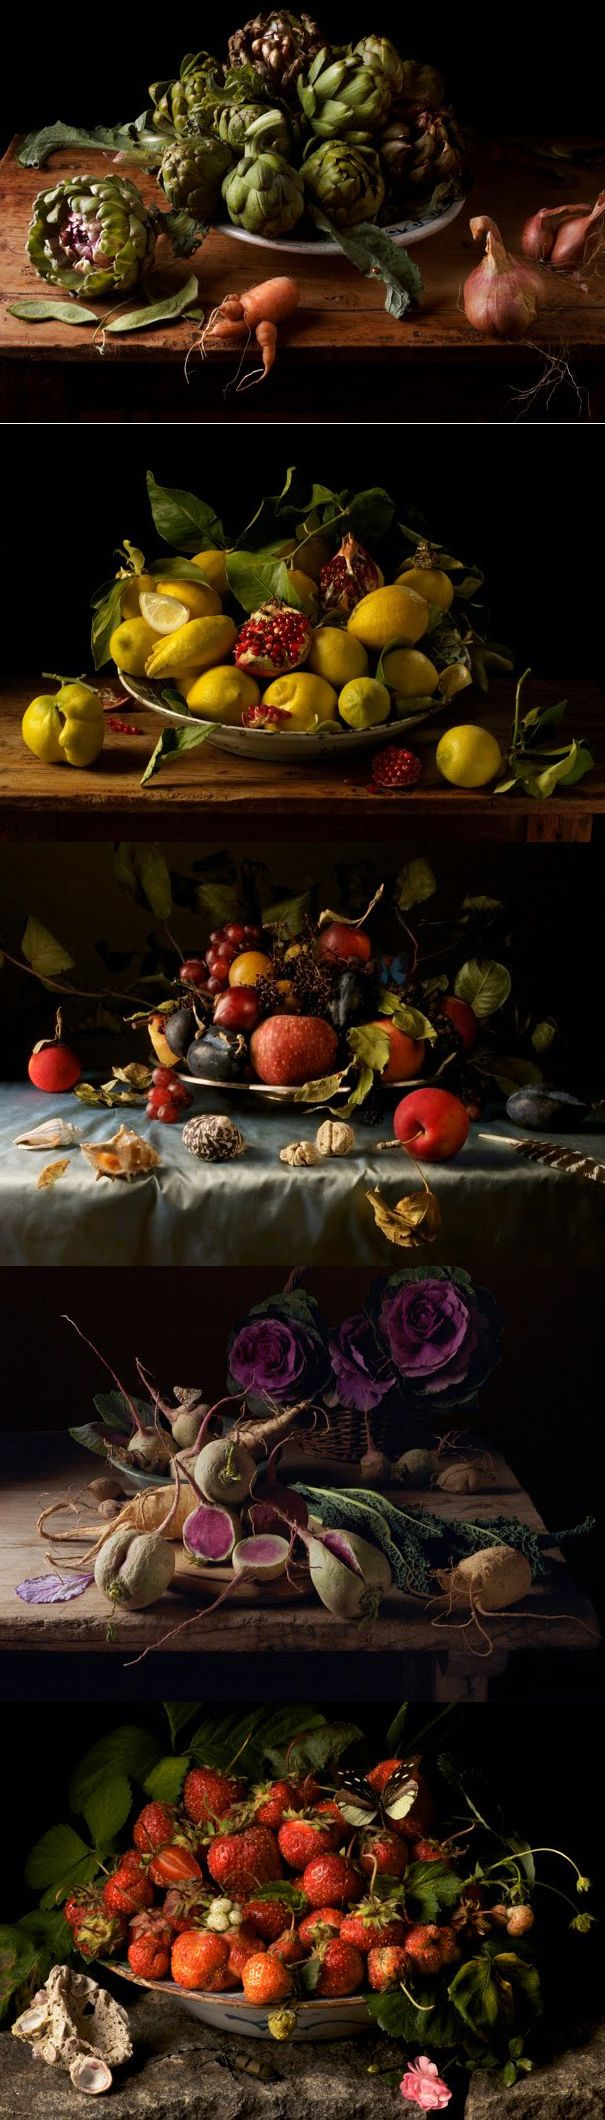 Paulette Tavormina's still life photography. Make these arrangements and reuse the produce.